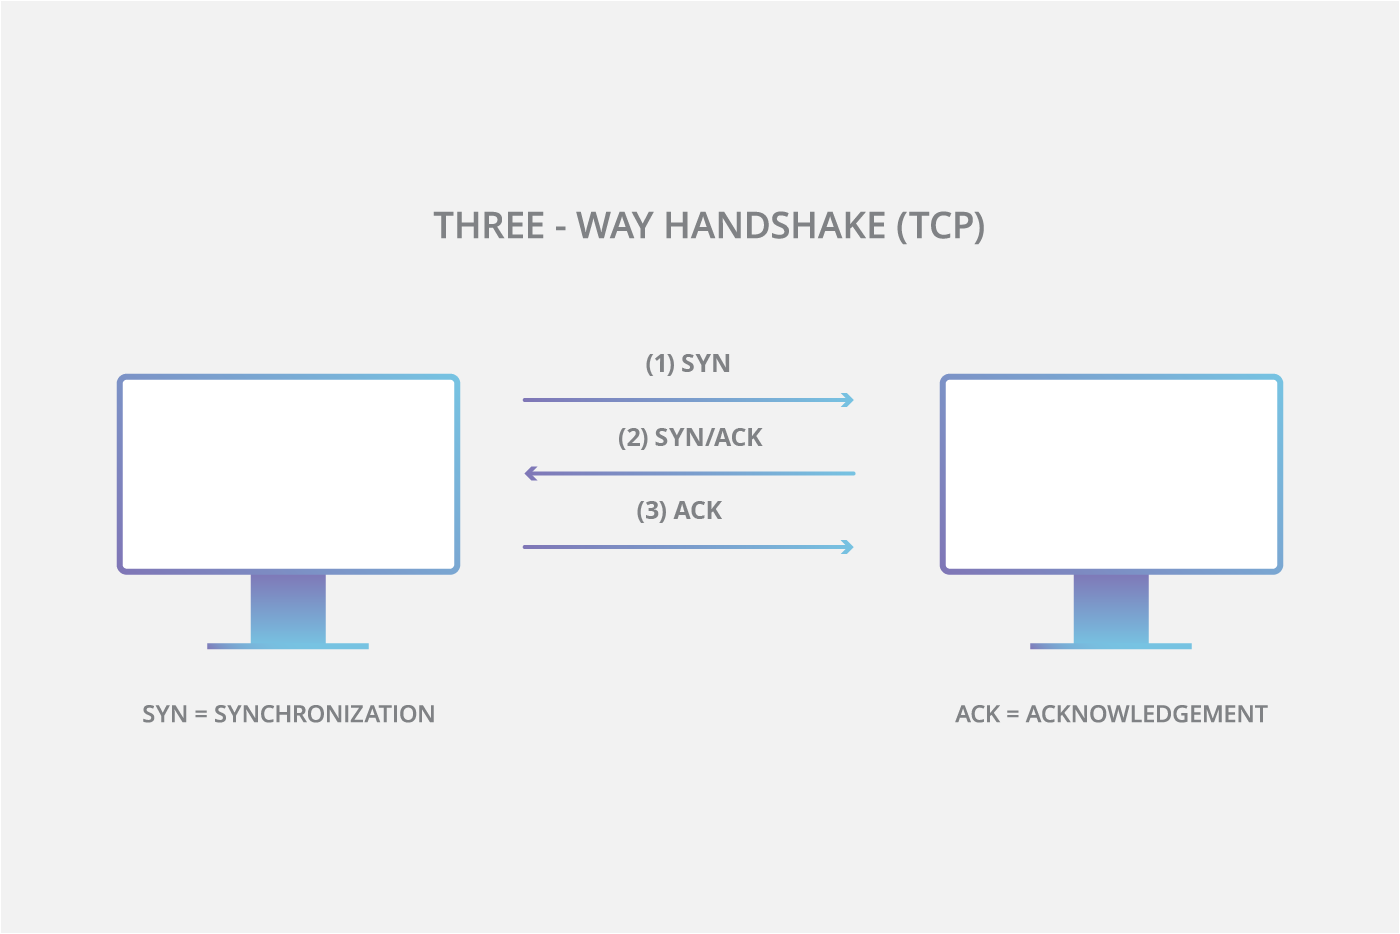 TCP Three-way handshake diagram